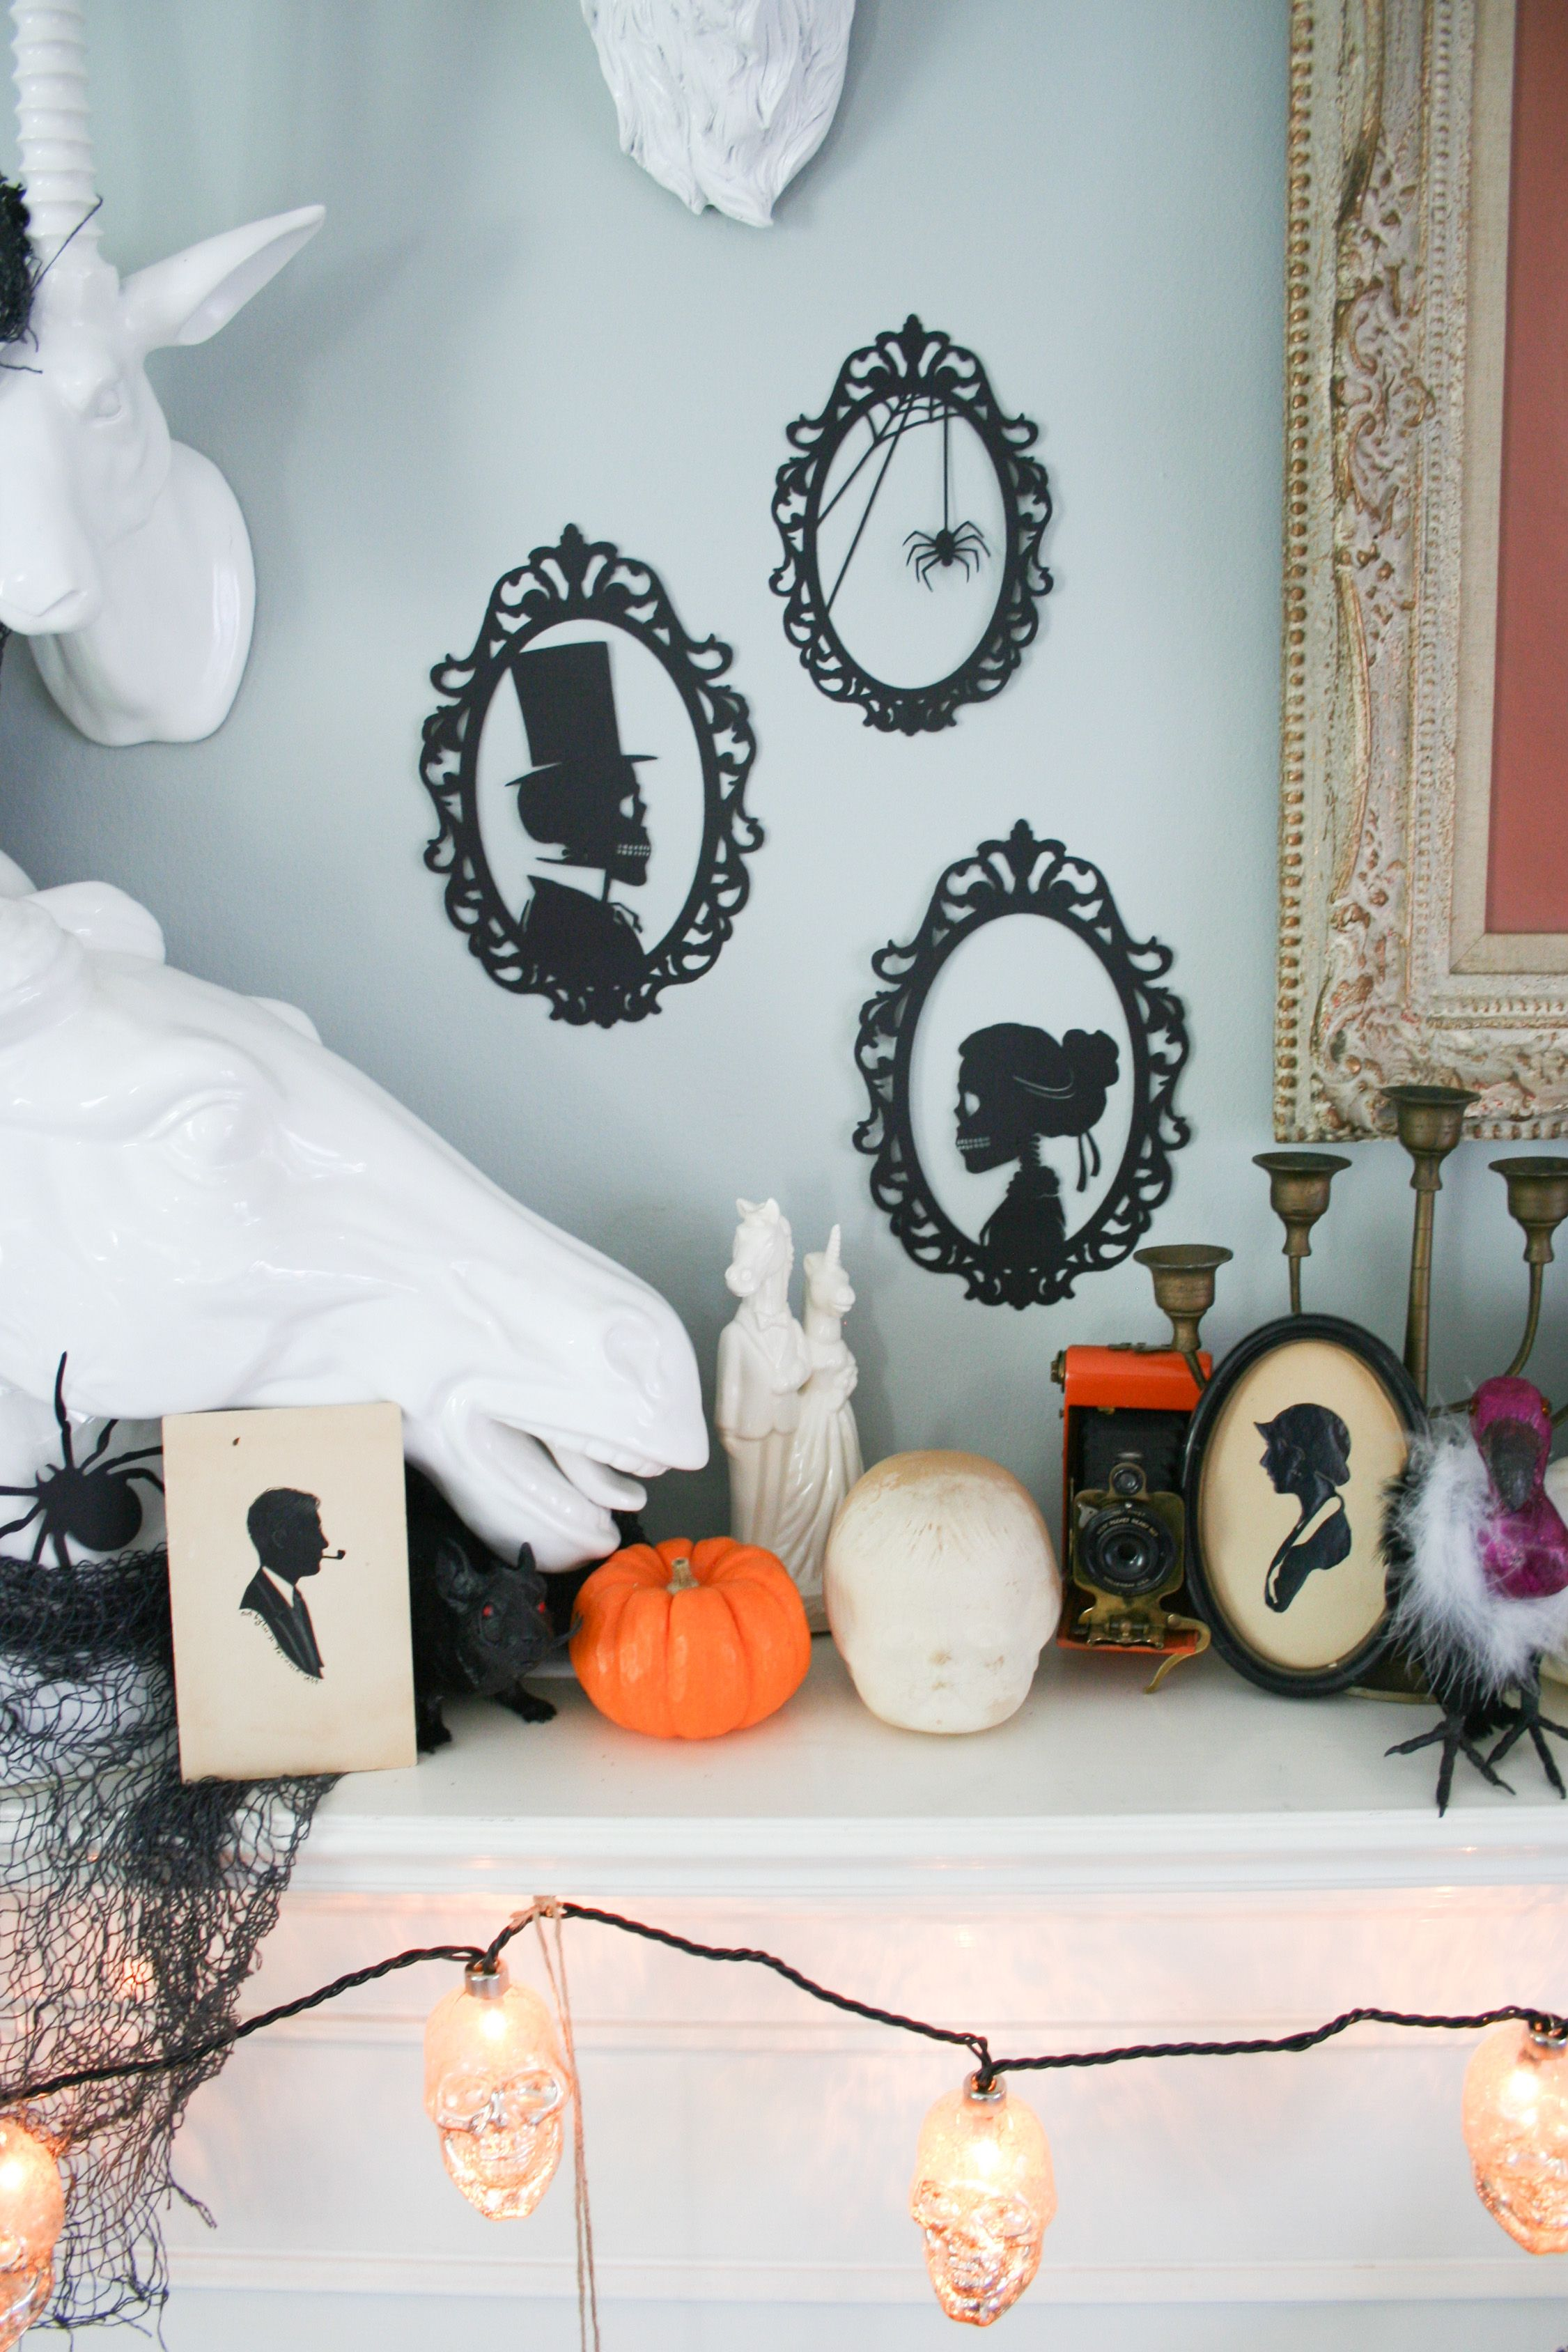 Diy These Skeleton Silhouettes For Your Wall For Halloween